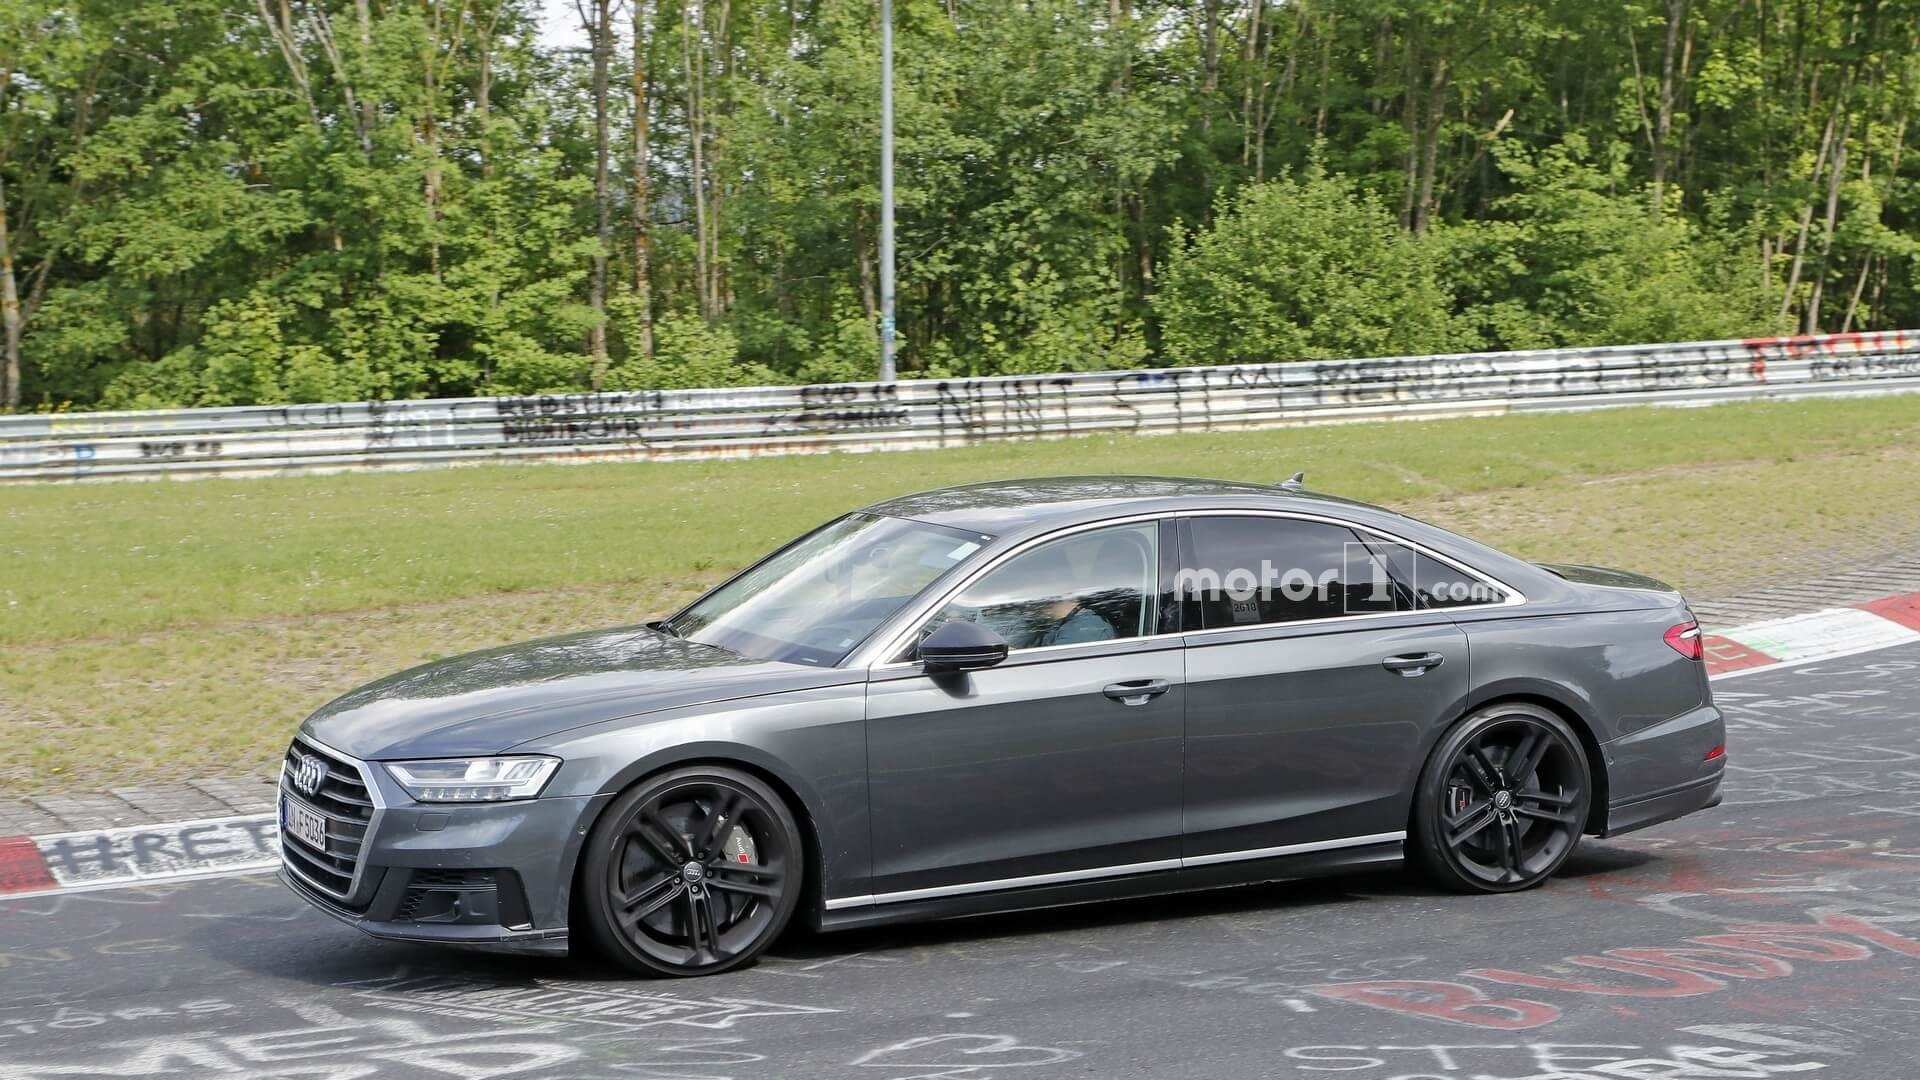 93 The Best 2019 Audi S8 Price And Review